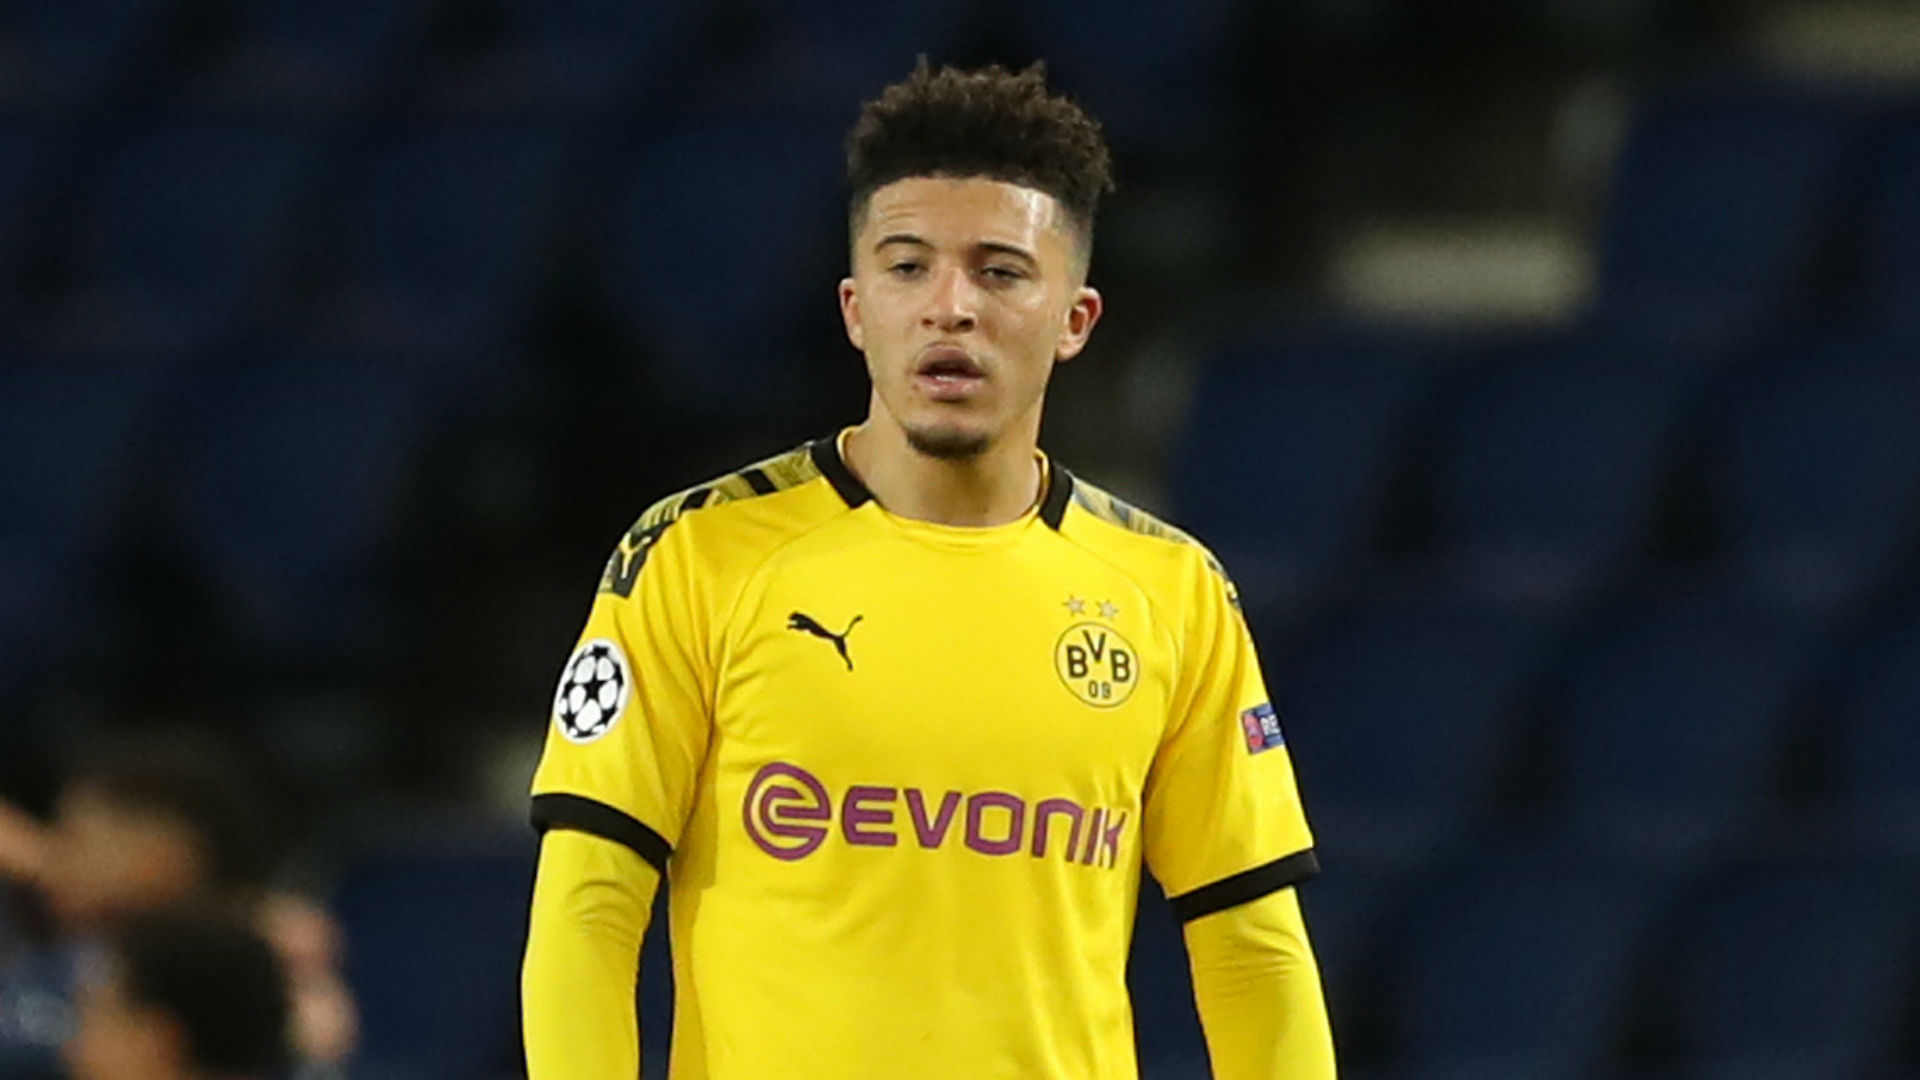 'Jadon has been in Dortmund for weeks' - Borussia director Zorc says Sancho has not flown to England - Goal